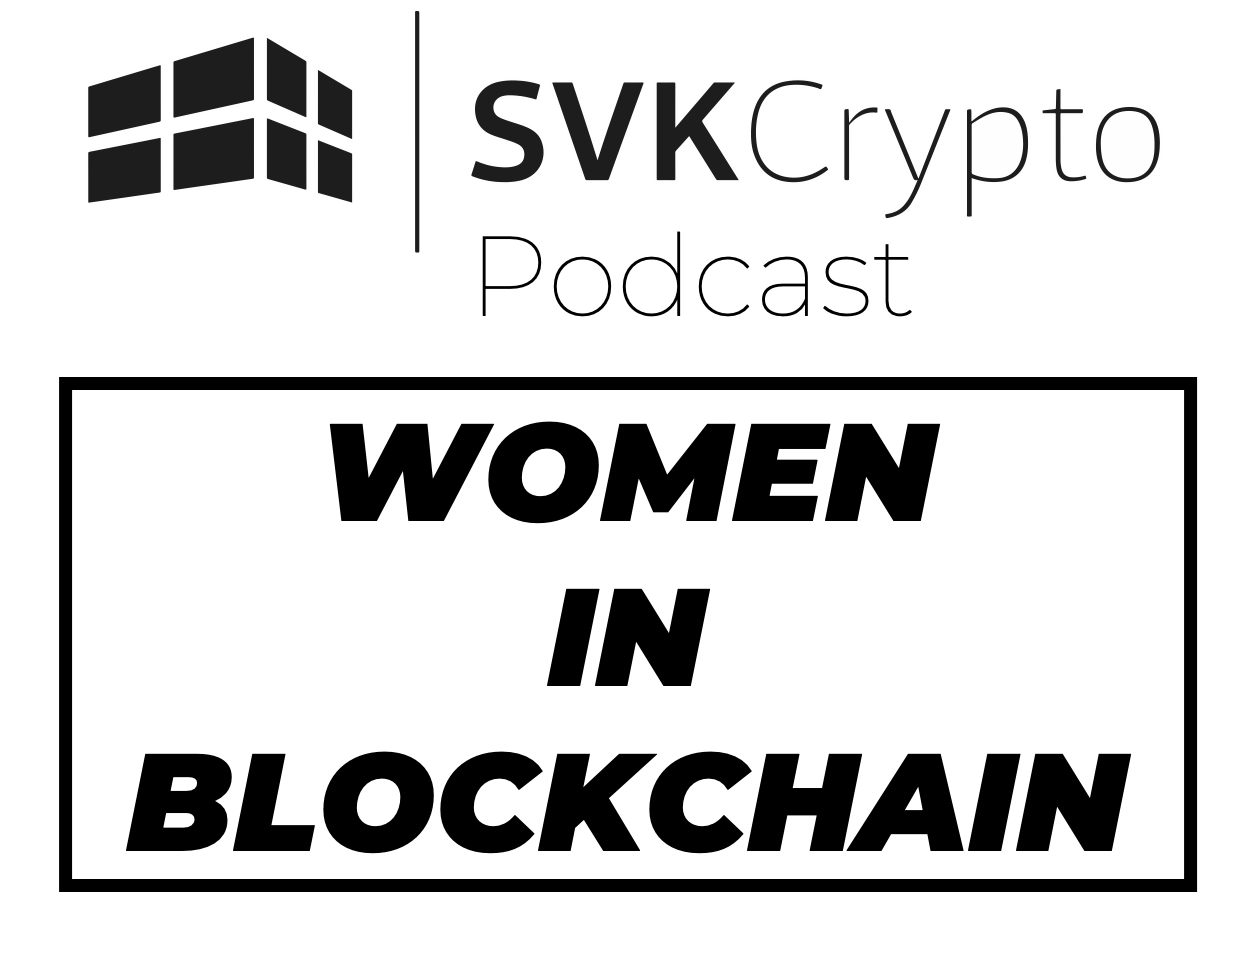 357: WOMEN IN BLOCKCHAIN PART 9 FEATURING THE CYBERCODE TWINS - 358